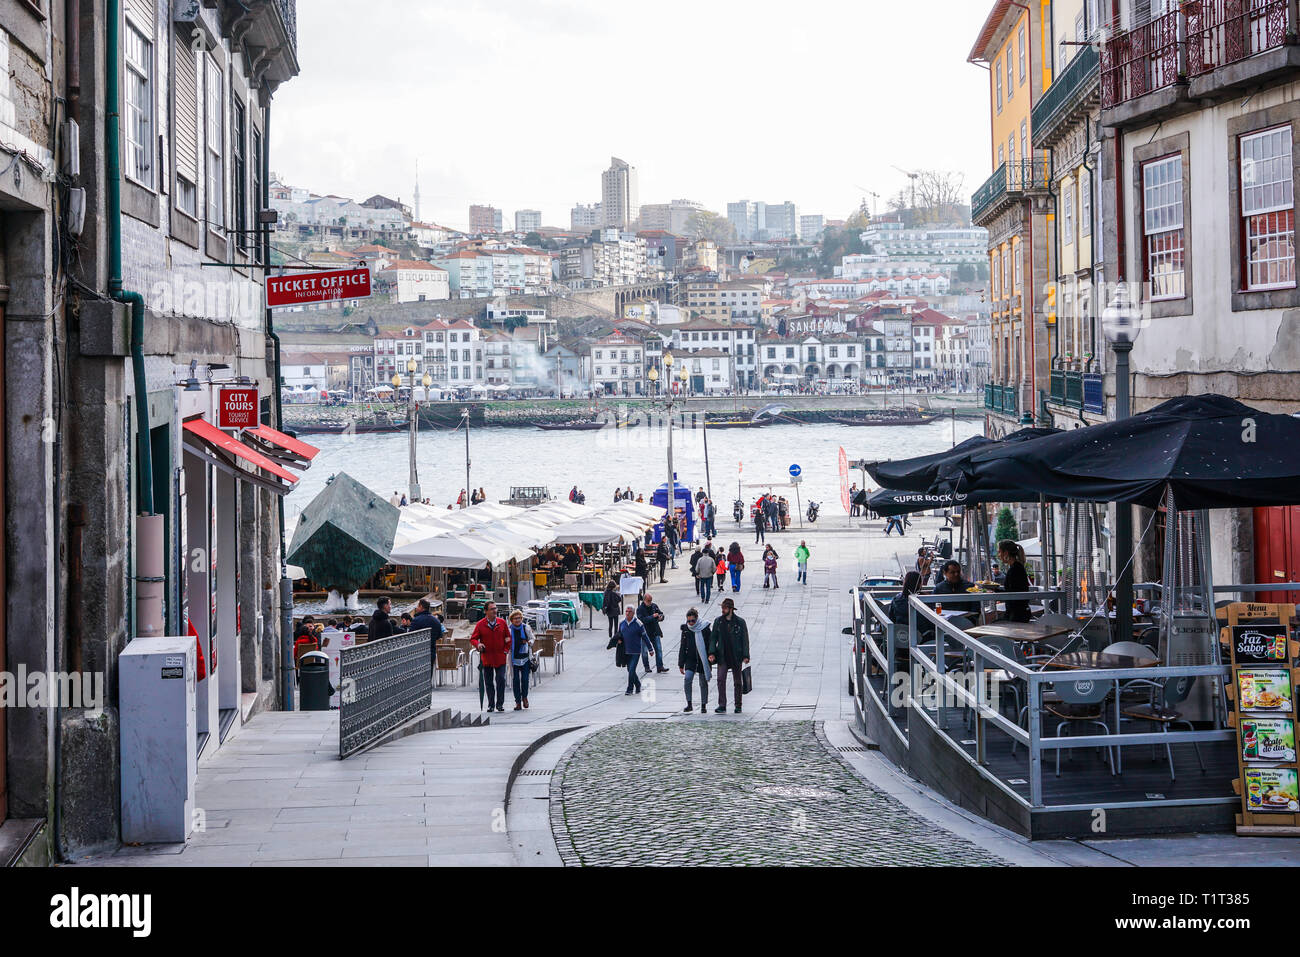 Porto, Portugal - December 2018: Ribeira Square during the day, with people walking and view to Douro River. Stock Photo